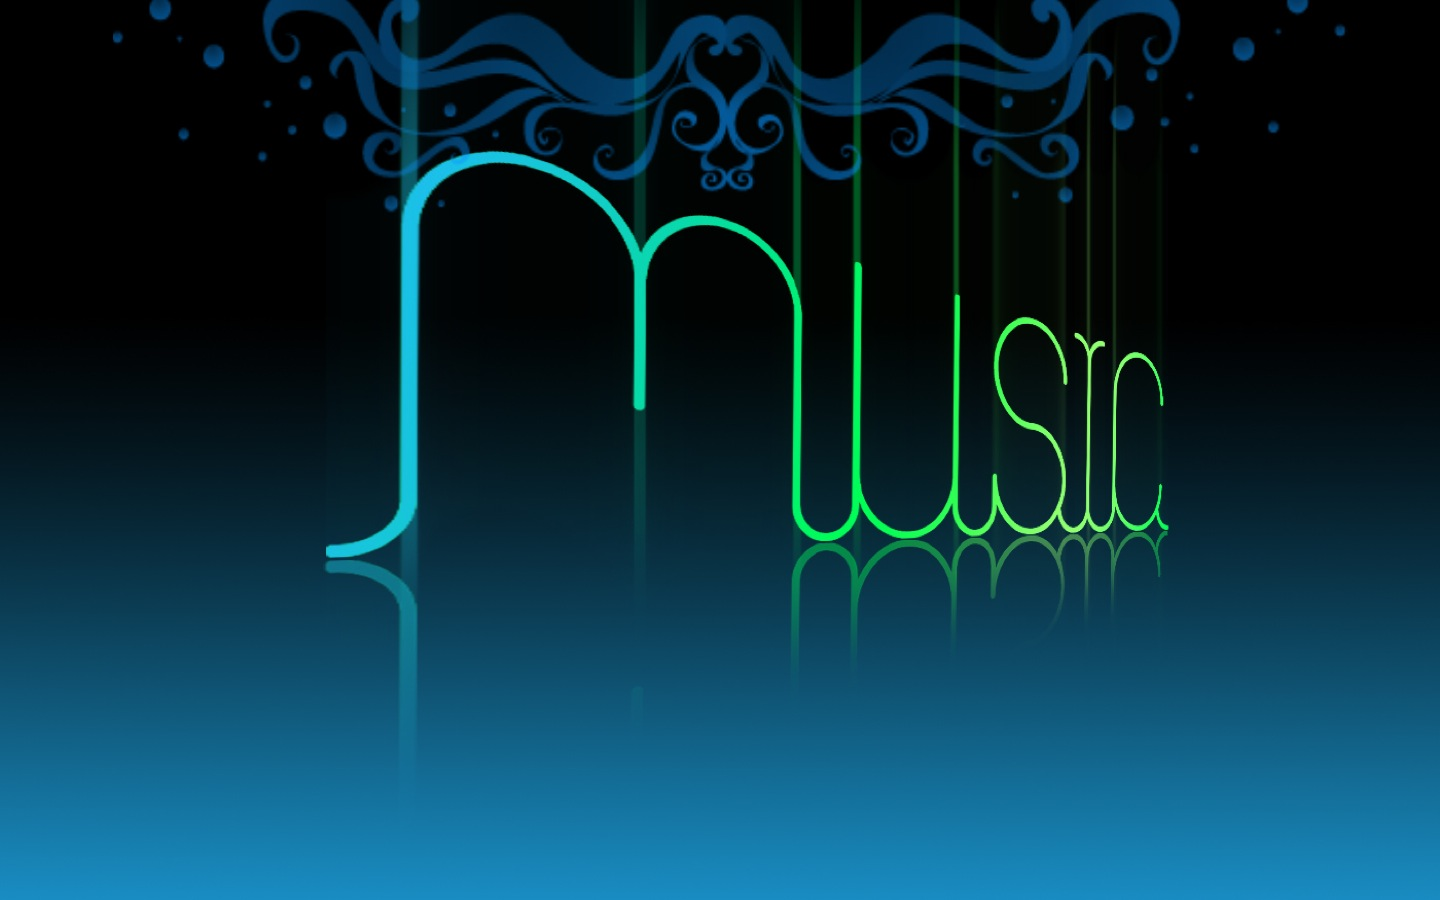 music wallpapers full hd - photo #31